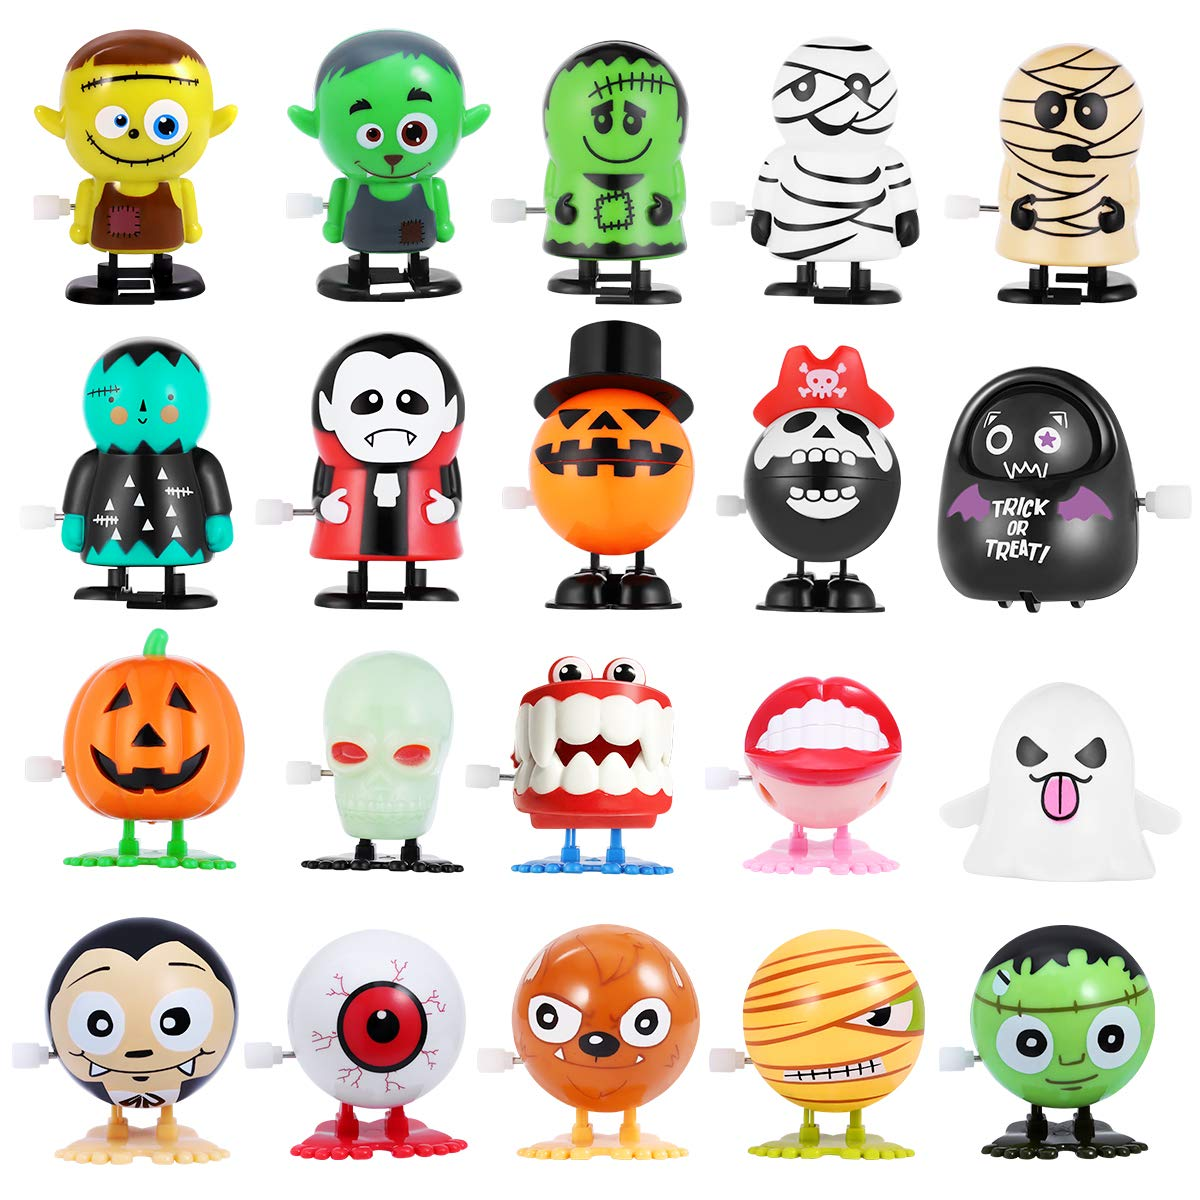 Wind Up Toys 20 Pcs Halloween Toys Assortments for Kids, Halloween Party Favors Supplies Goody Bag Fillers Stuffers by Unomor